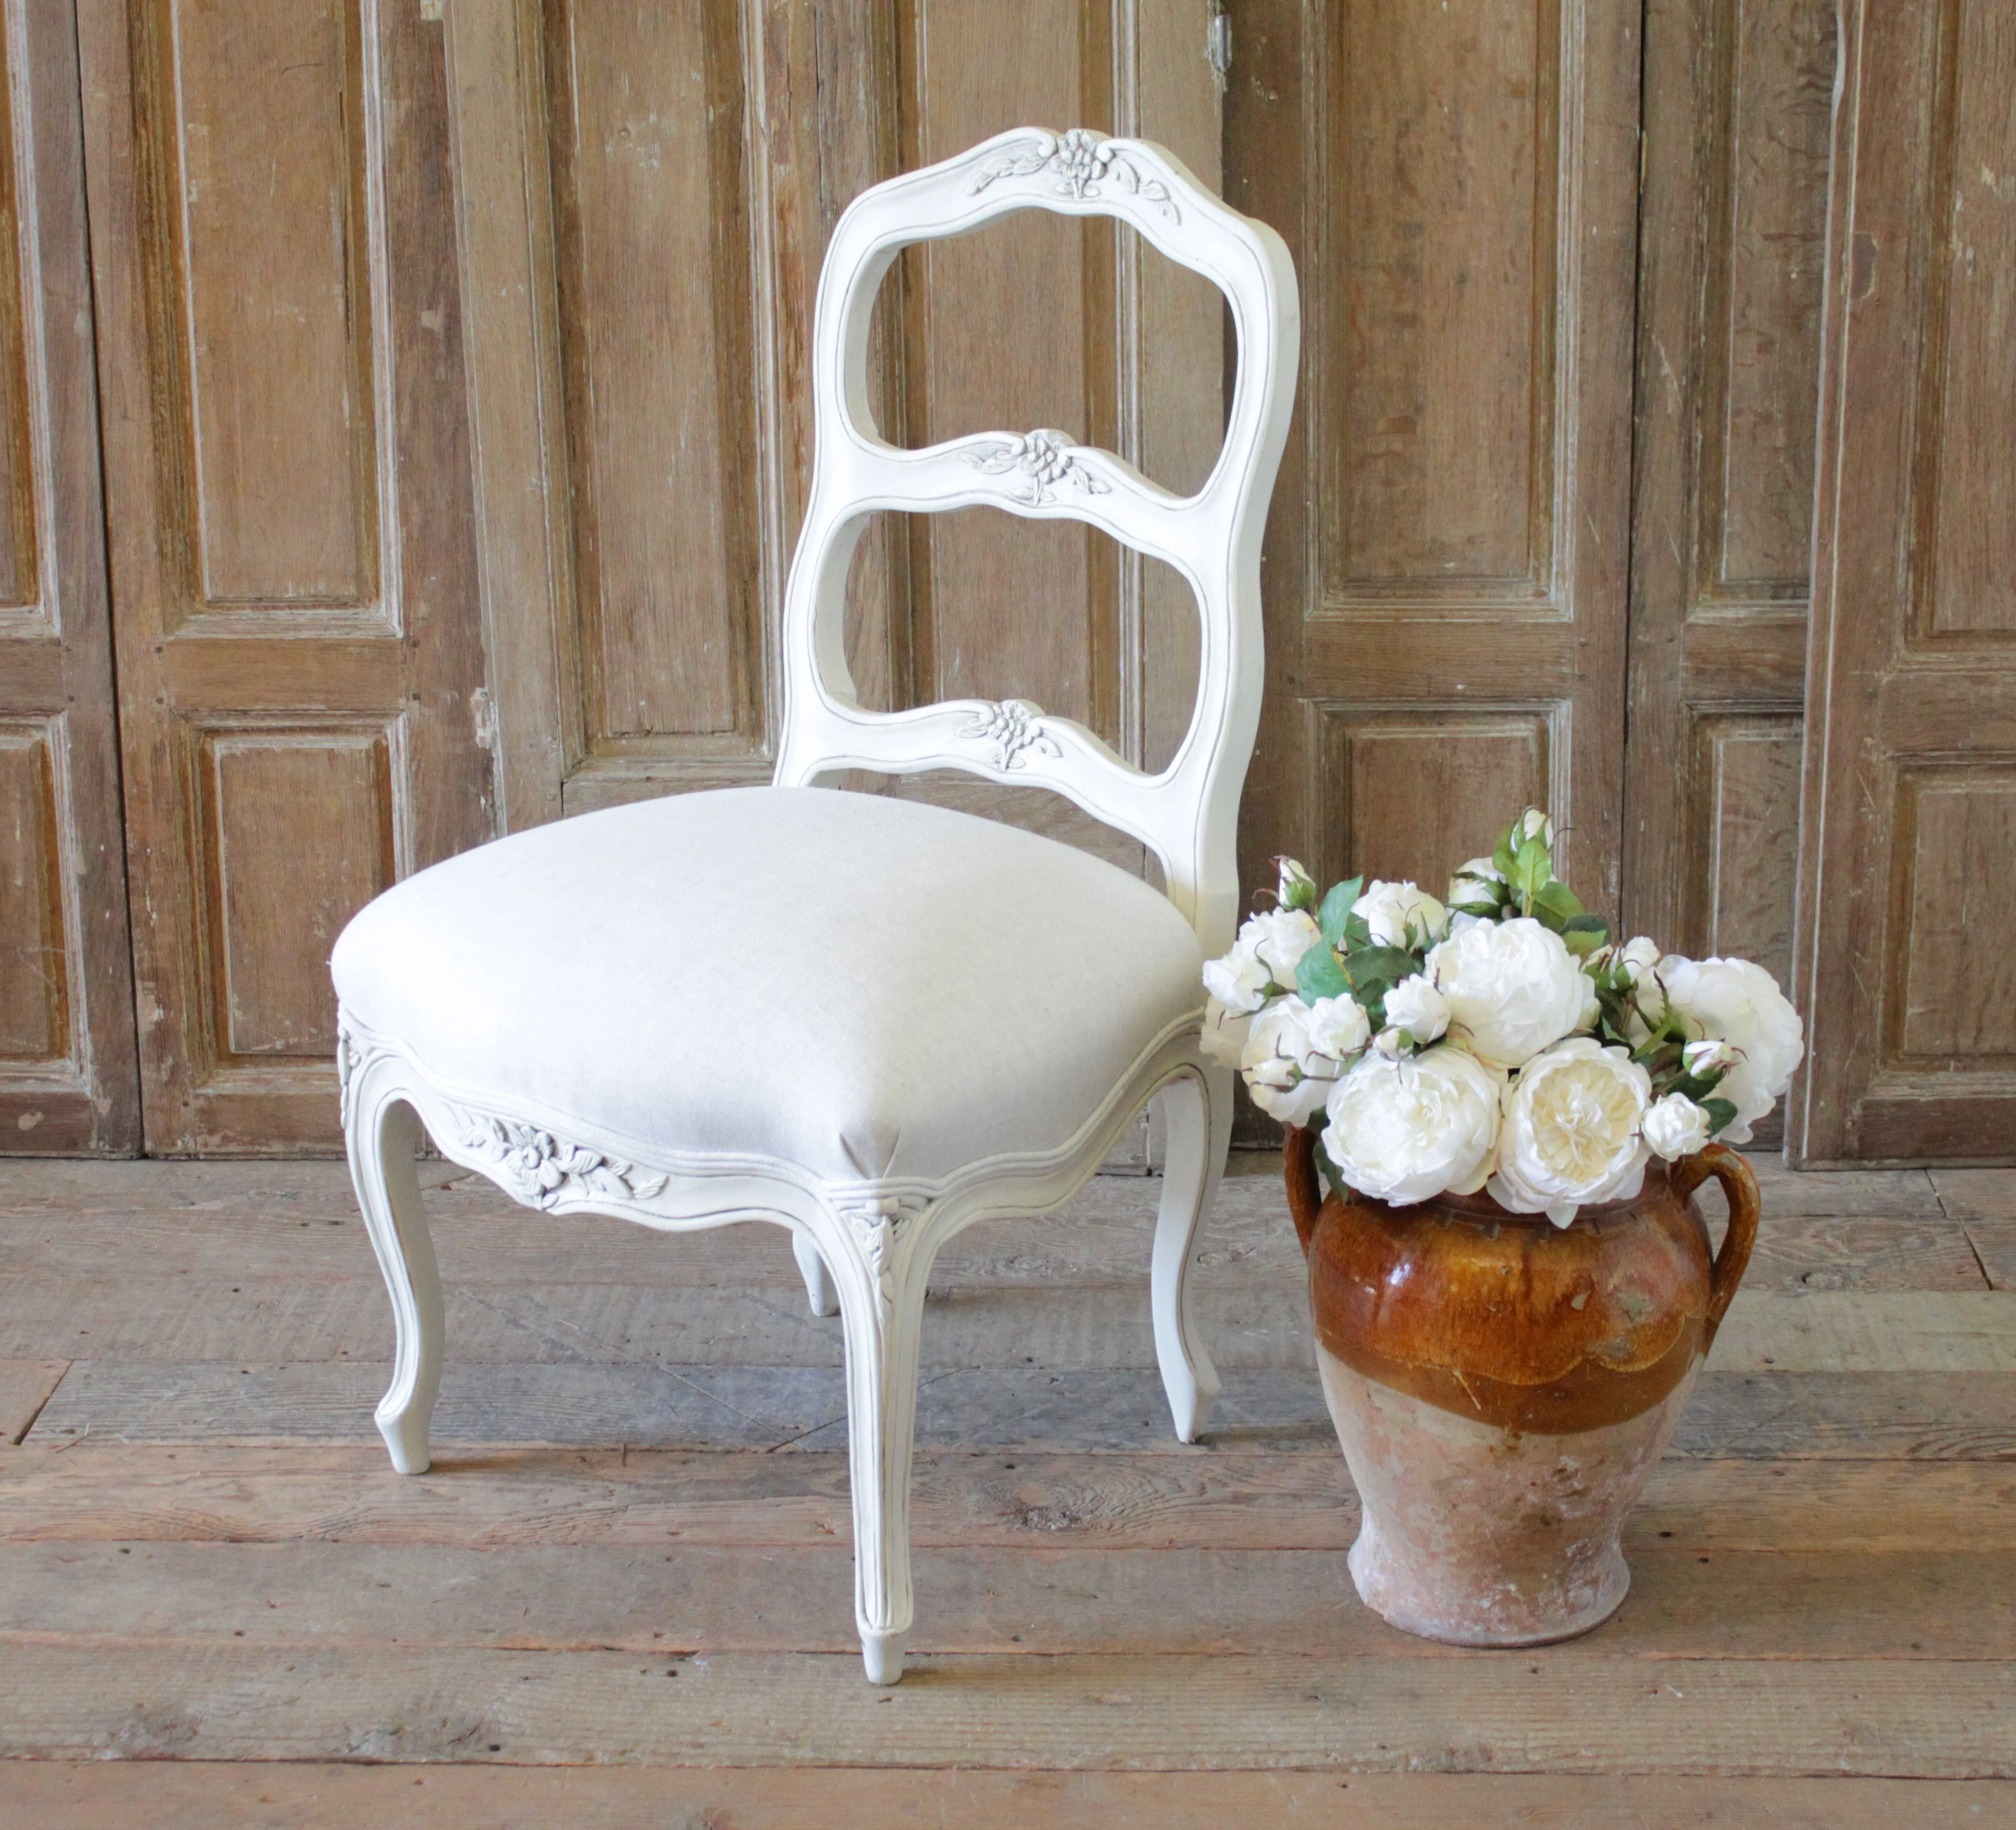 Monterey Style Ladder Back Accent Chair: 20th Century French Country Style Ladder Back Accent Chair